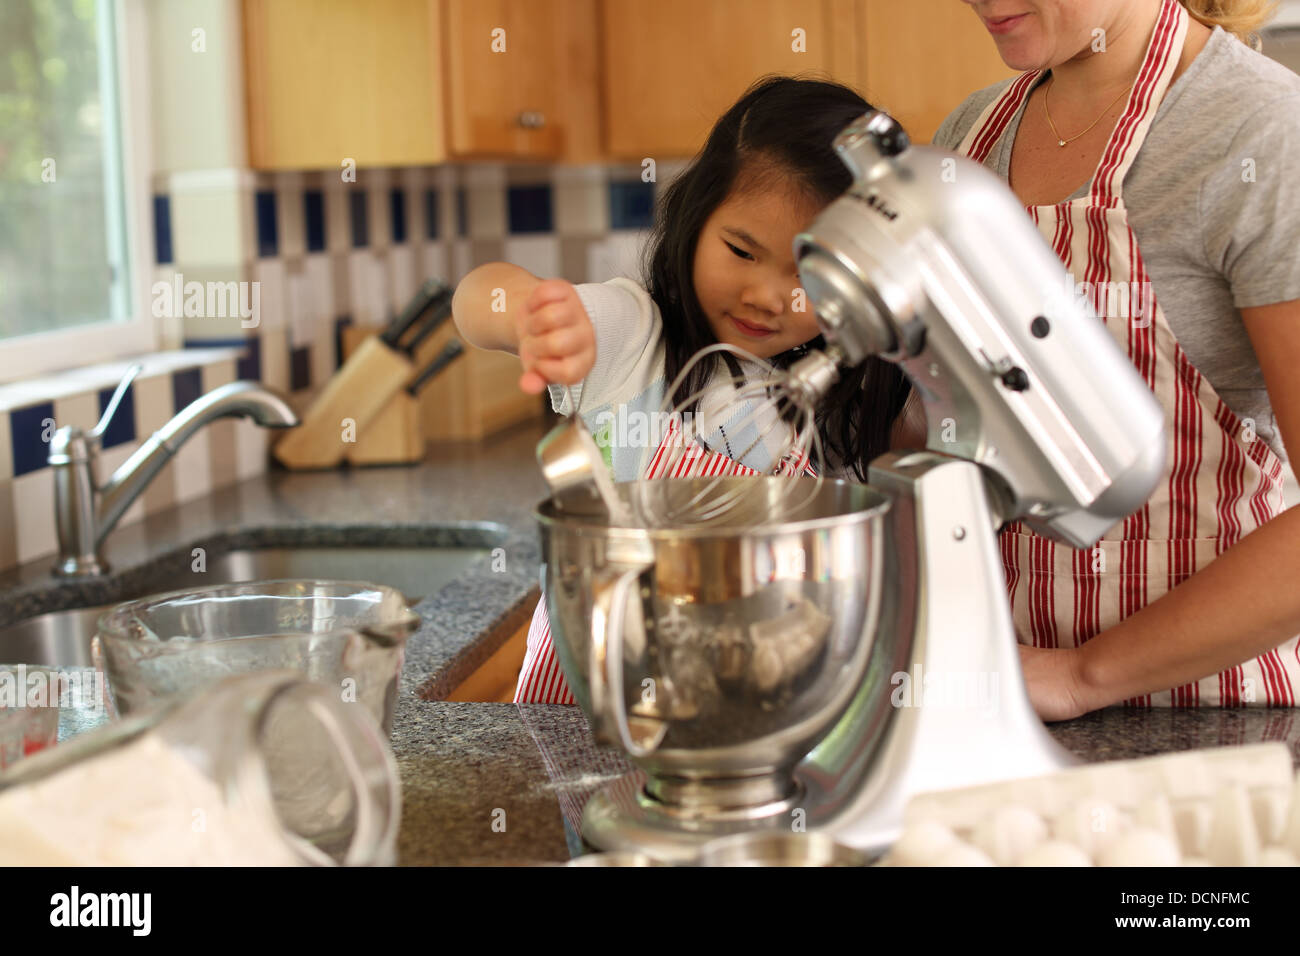 Young girl helping mother bake in kitchen - Stock Image